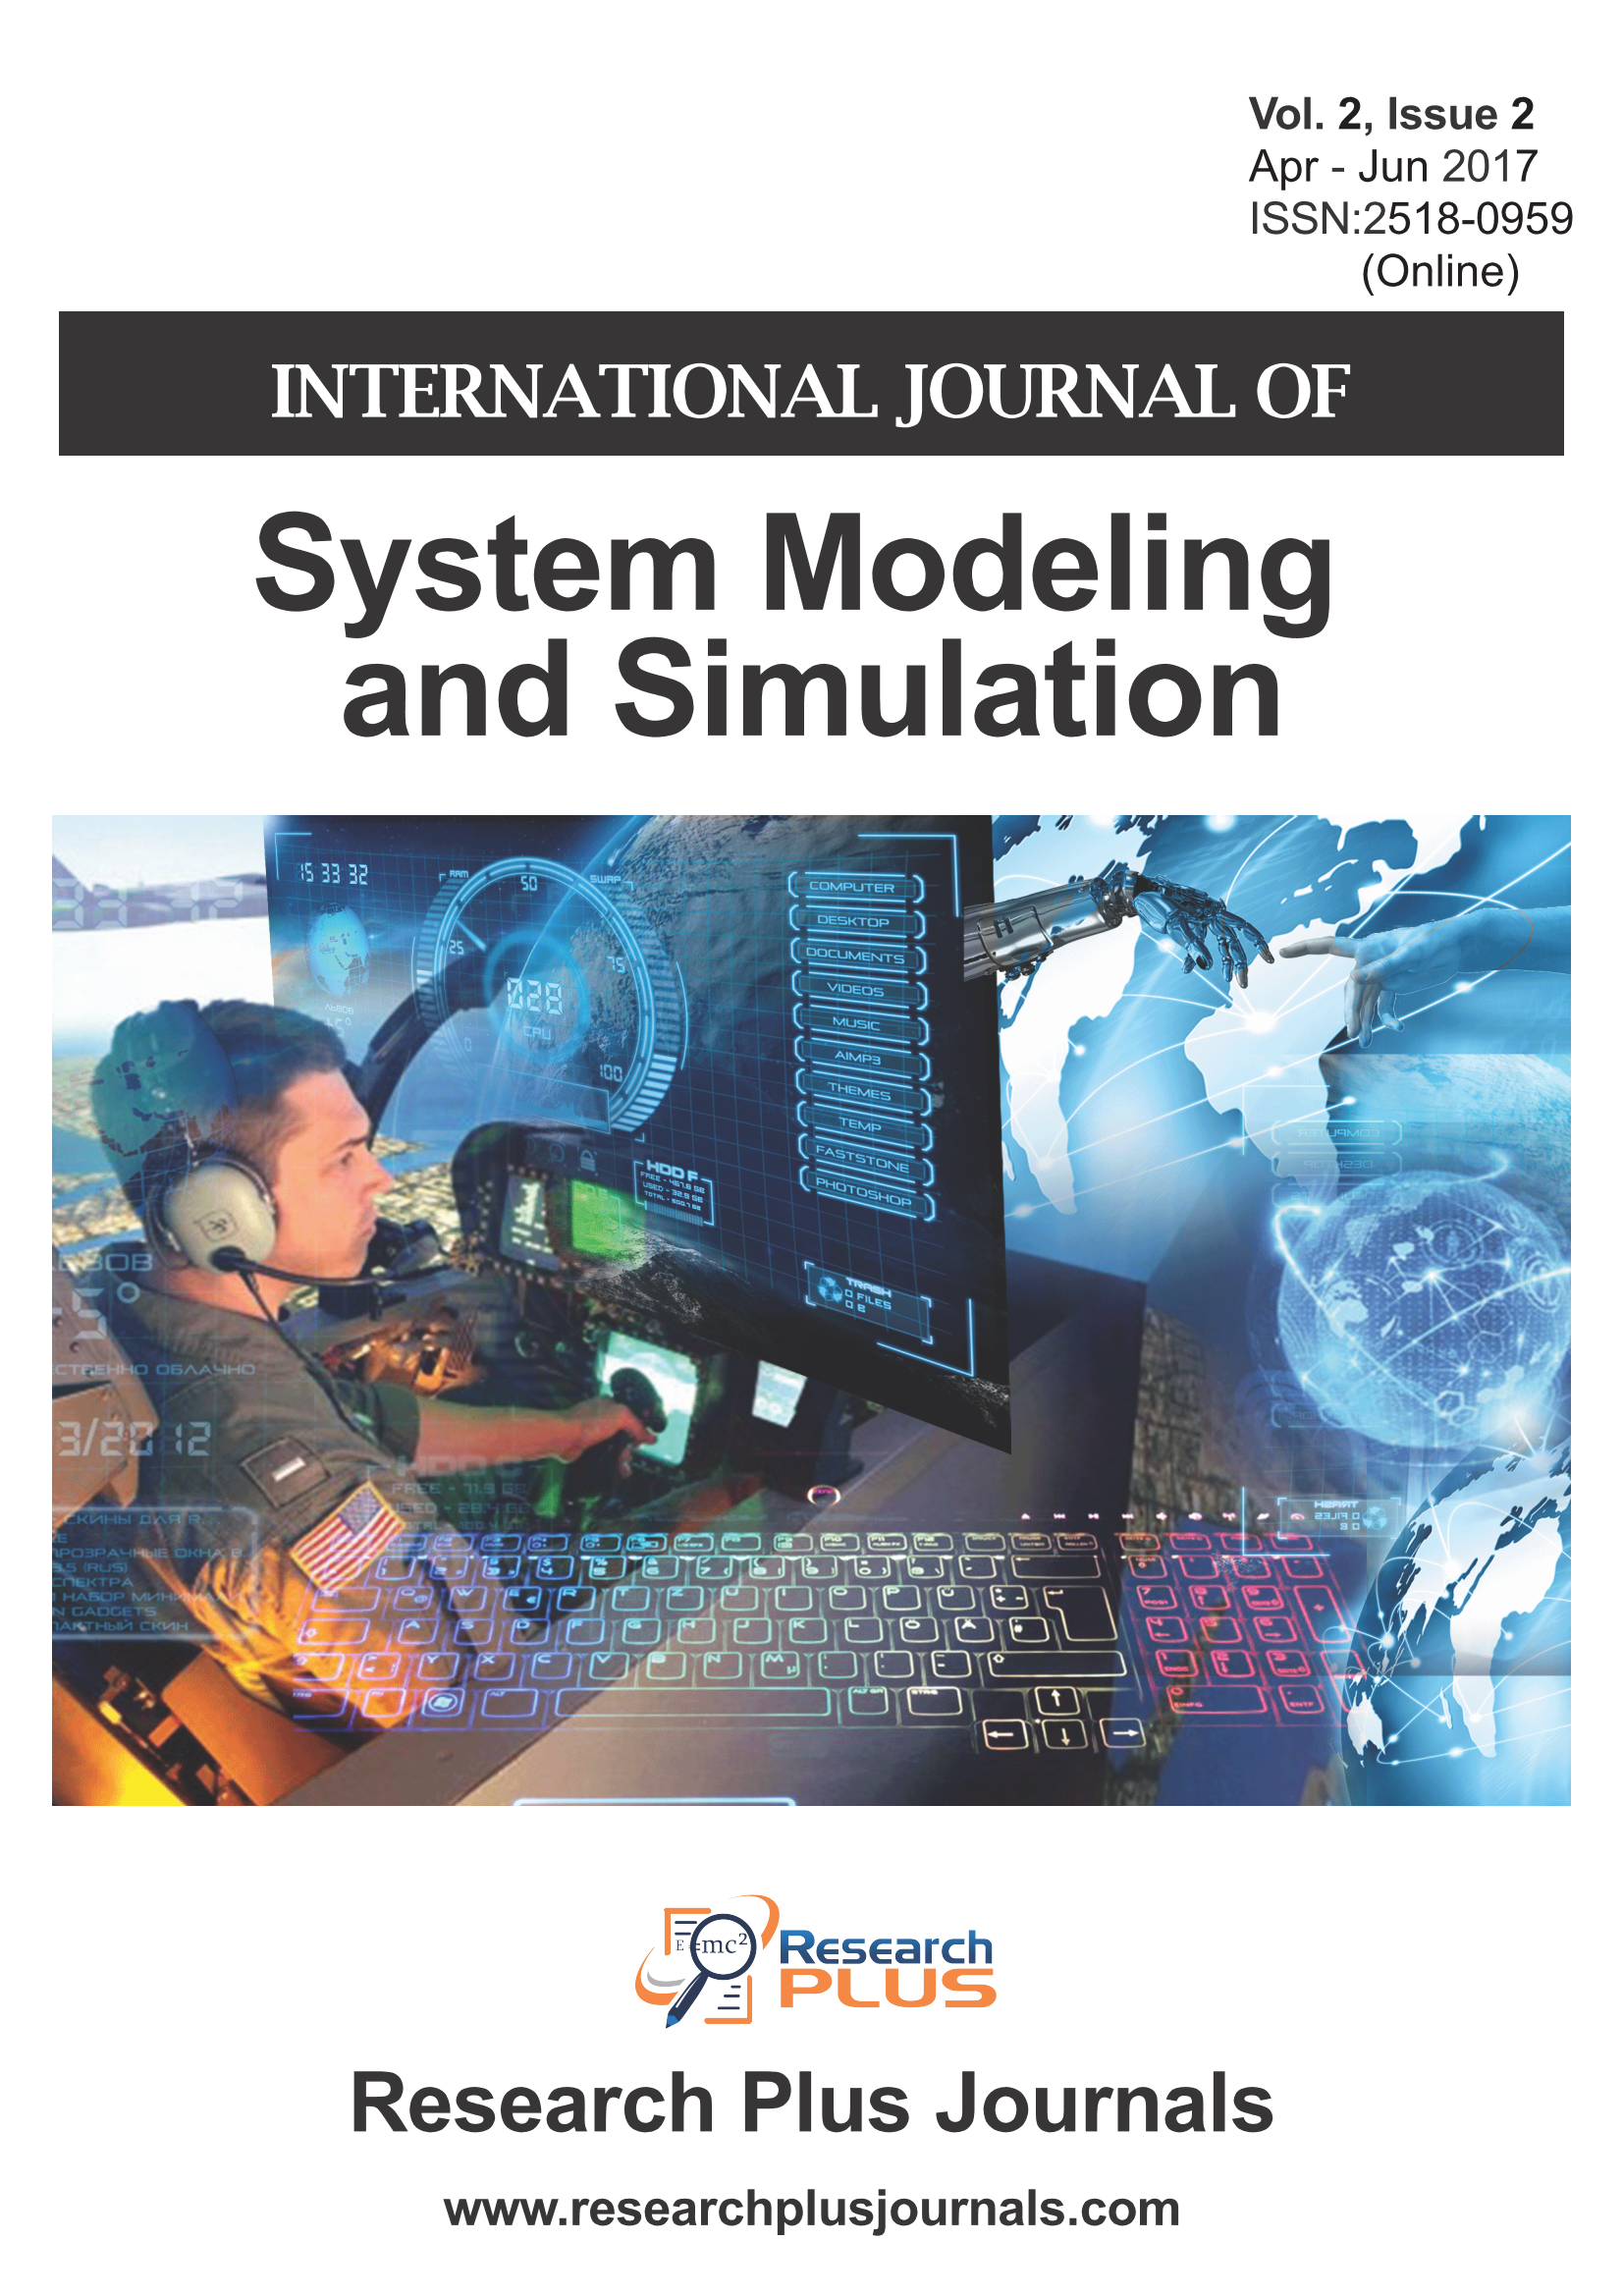 International Journal of System Modeling and Simulation (ISSN Online: 2518-0959) - Vol.2, Issue 2